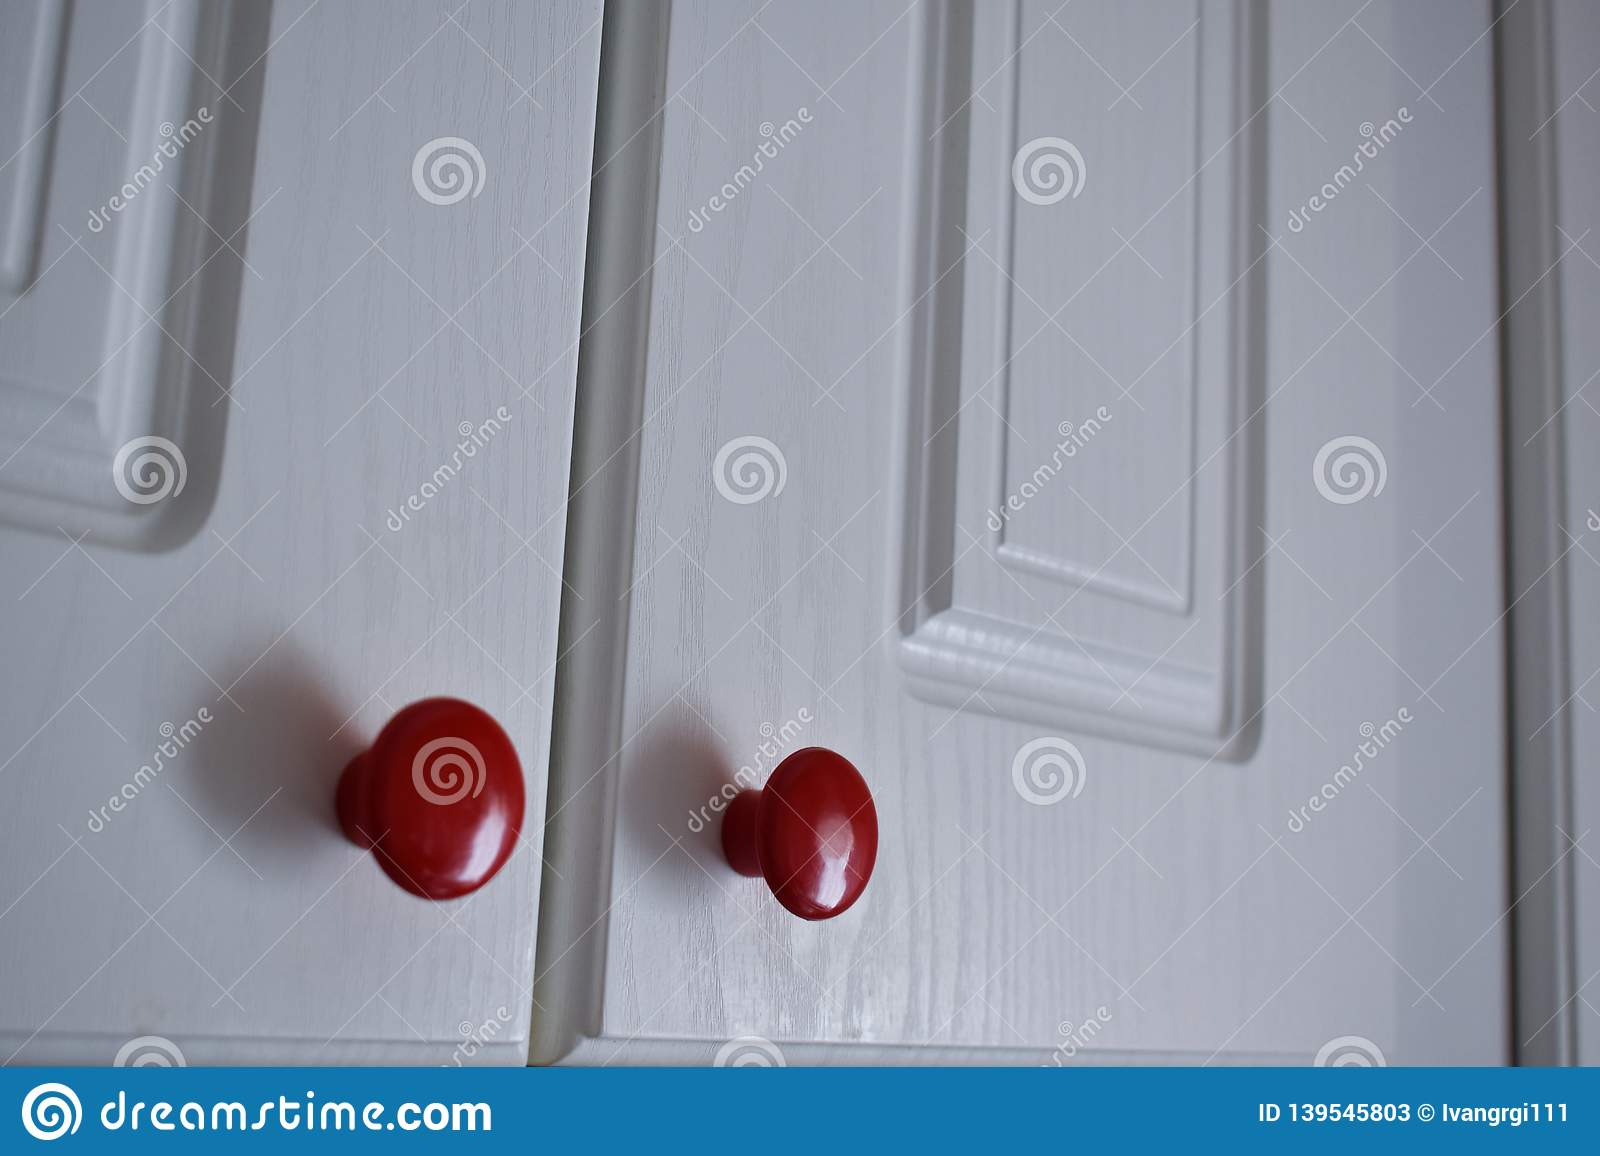 Kitchen Cabinets With Red Knobs White Kitchen Cabinet With Red Knobs Stock Image Image Of White